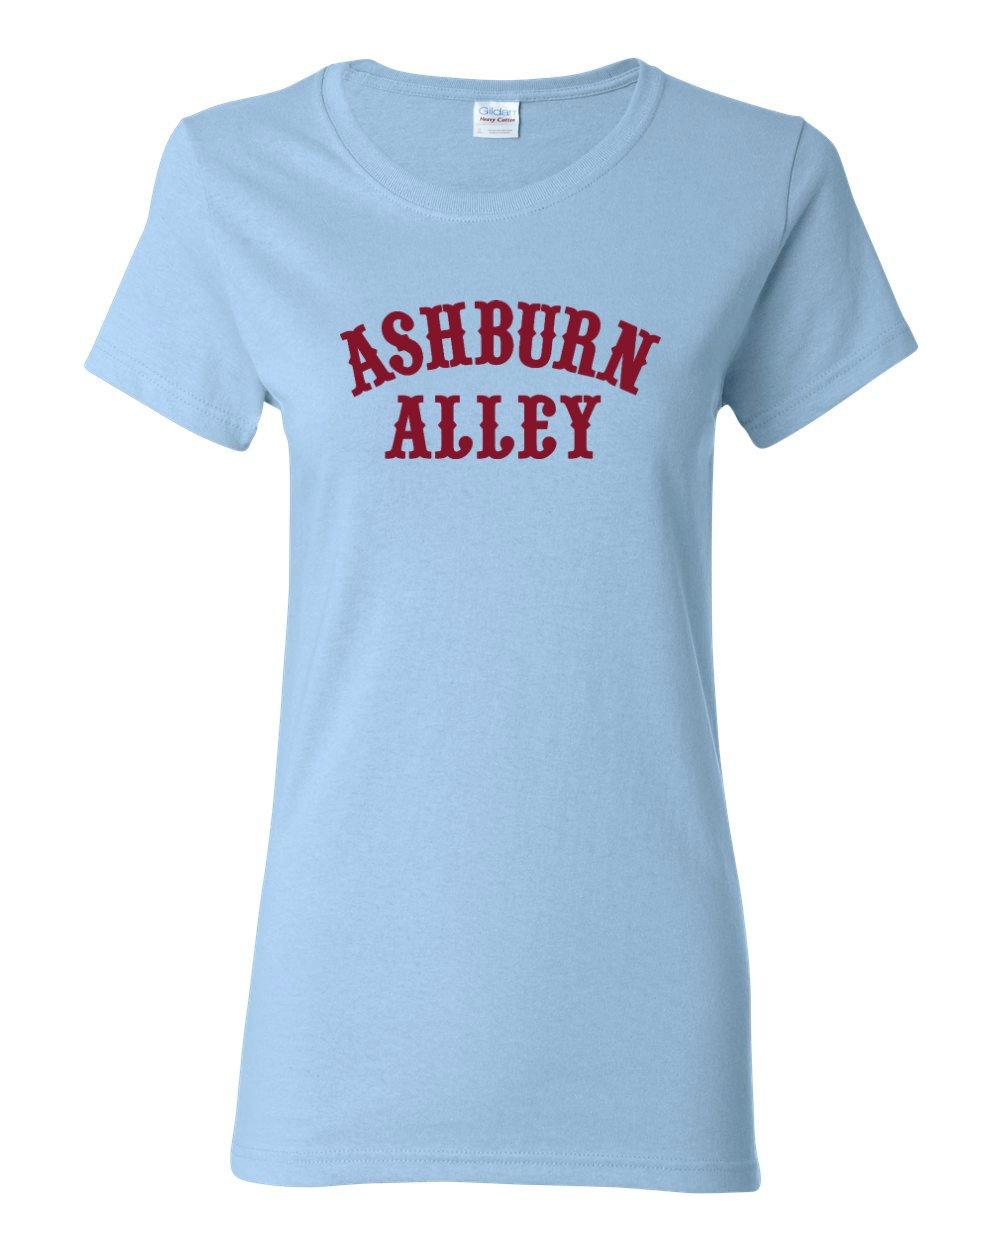 Ashburn Alley LADIES Missy-Fit T-Shirt